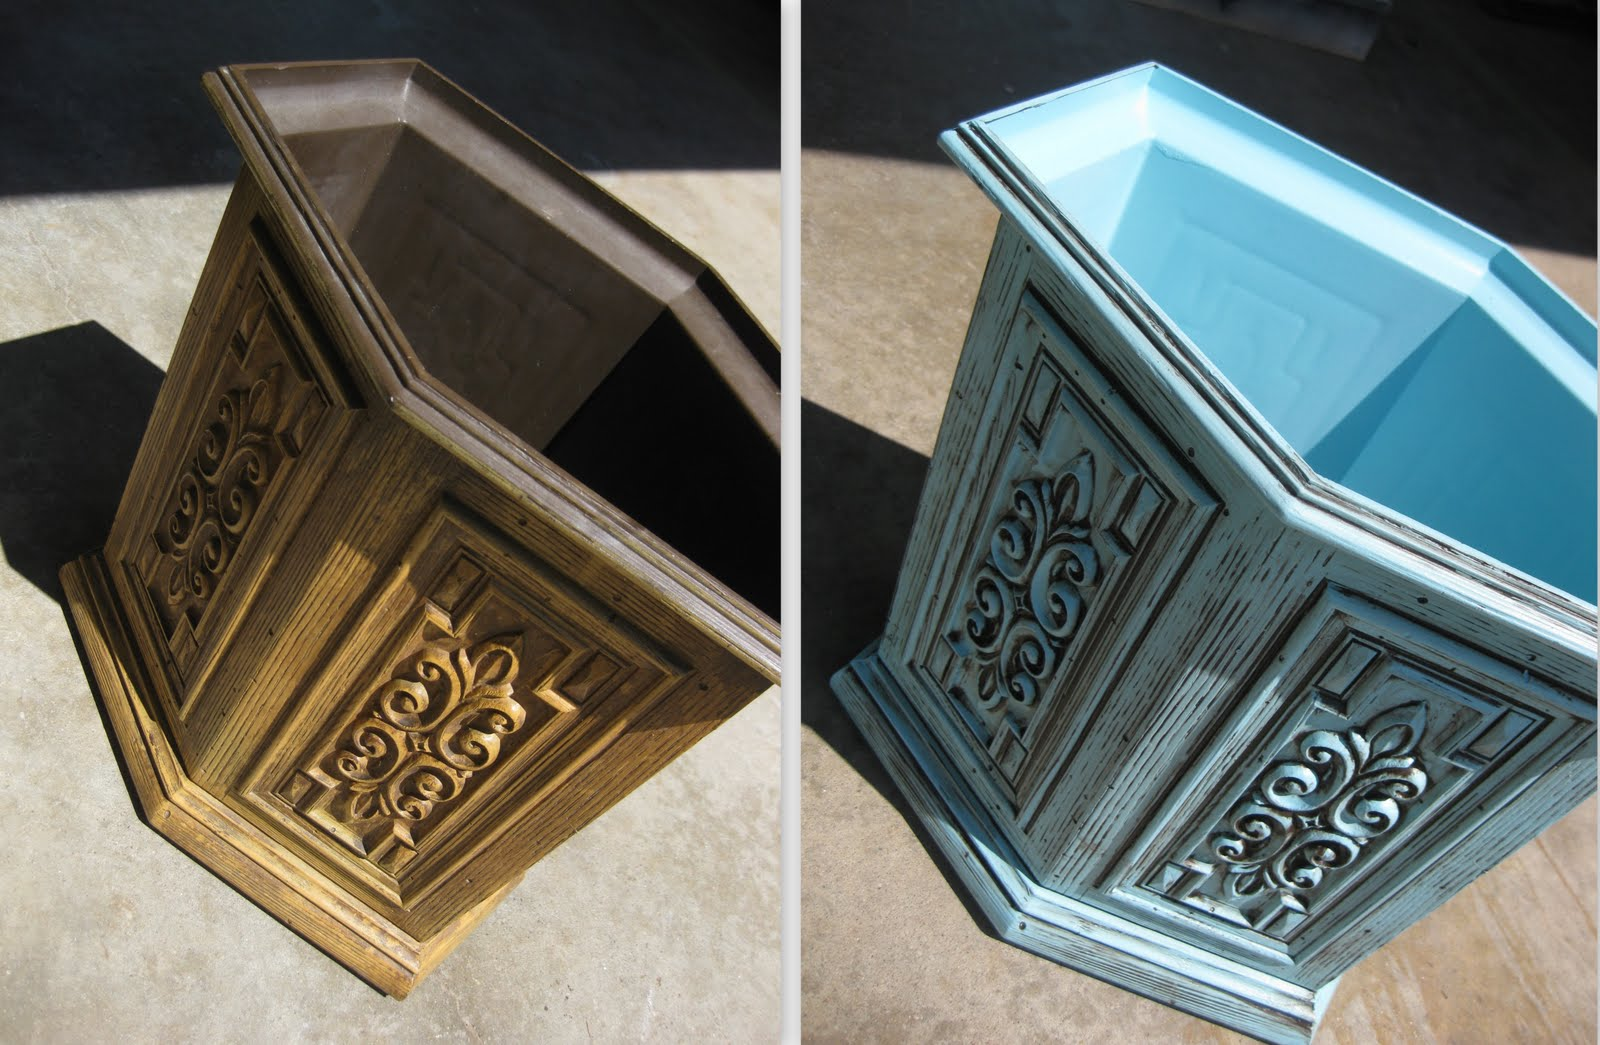 The Before And After Photo Of Our Wastebasket Used For The DIY Glazing And Antiquing  Furniture